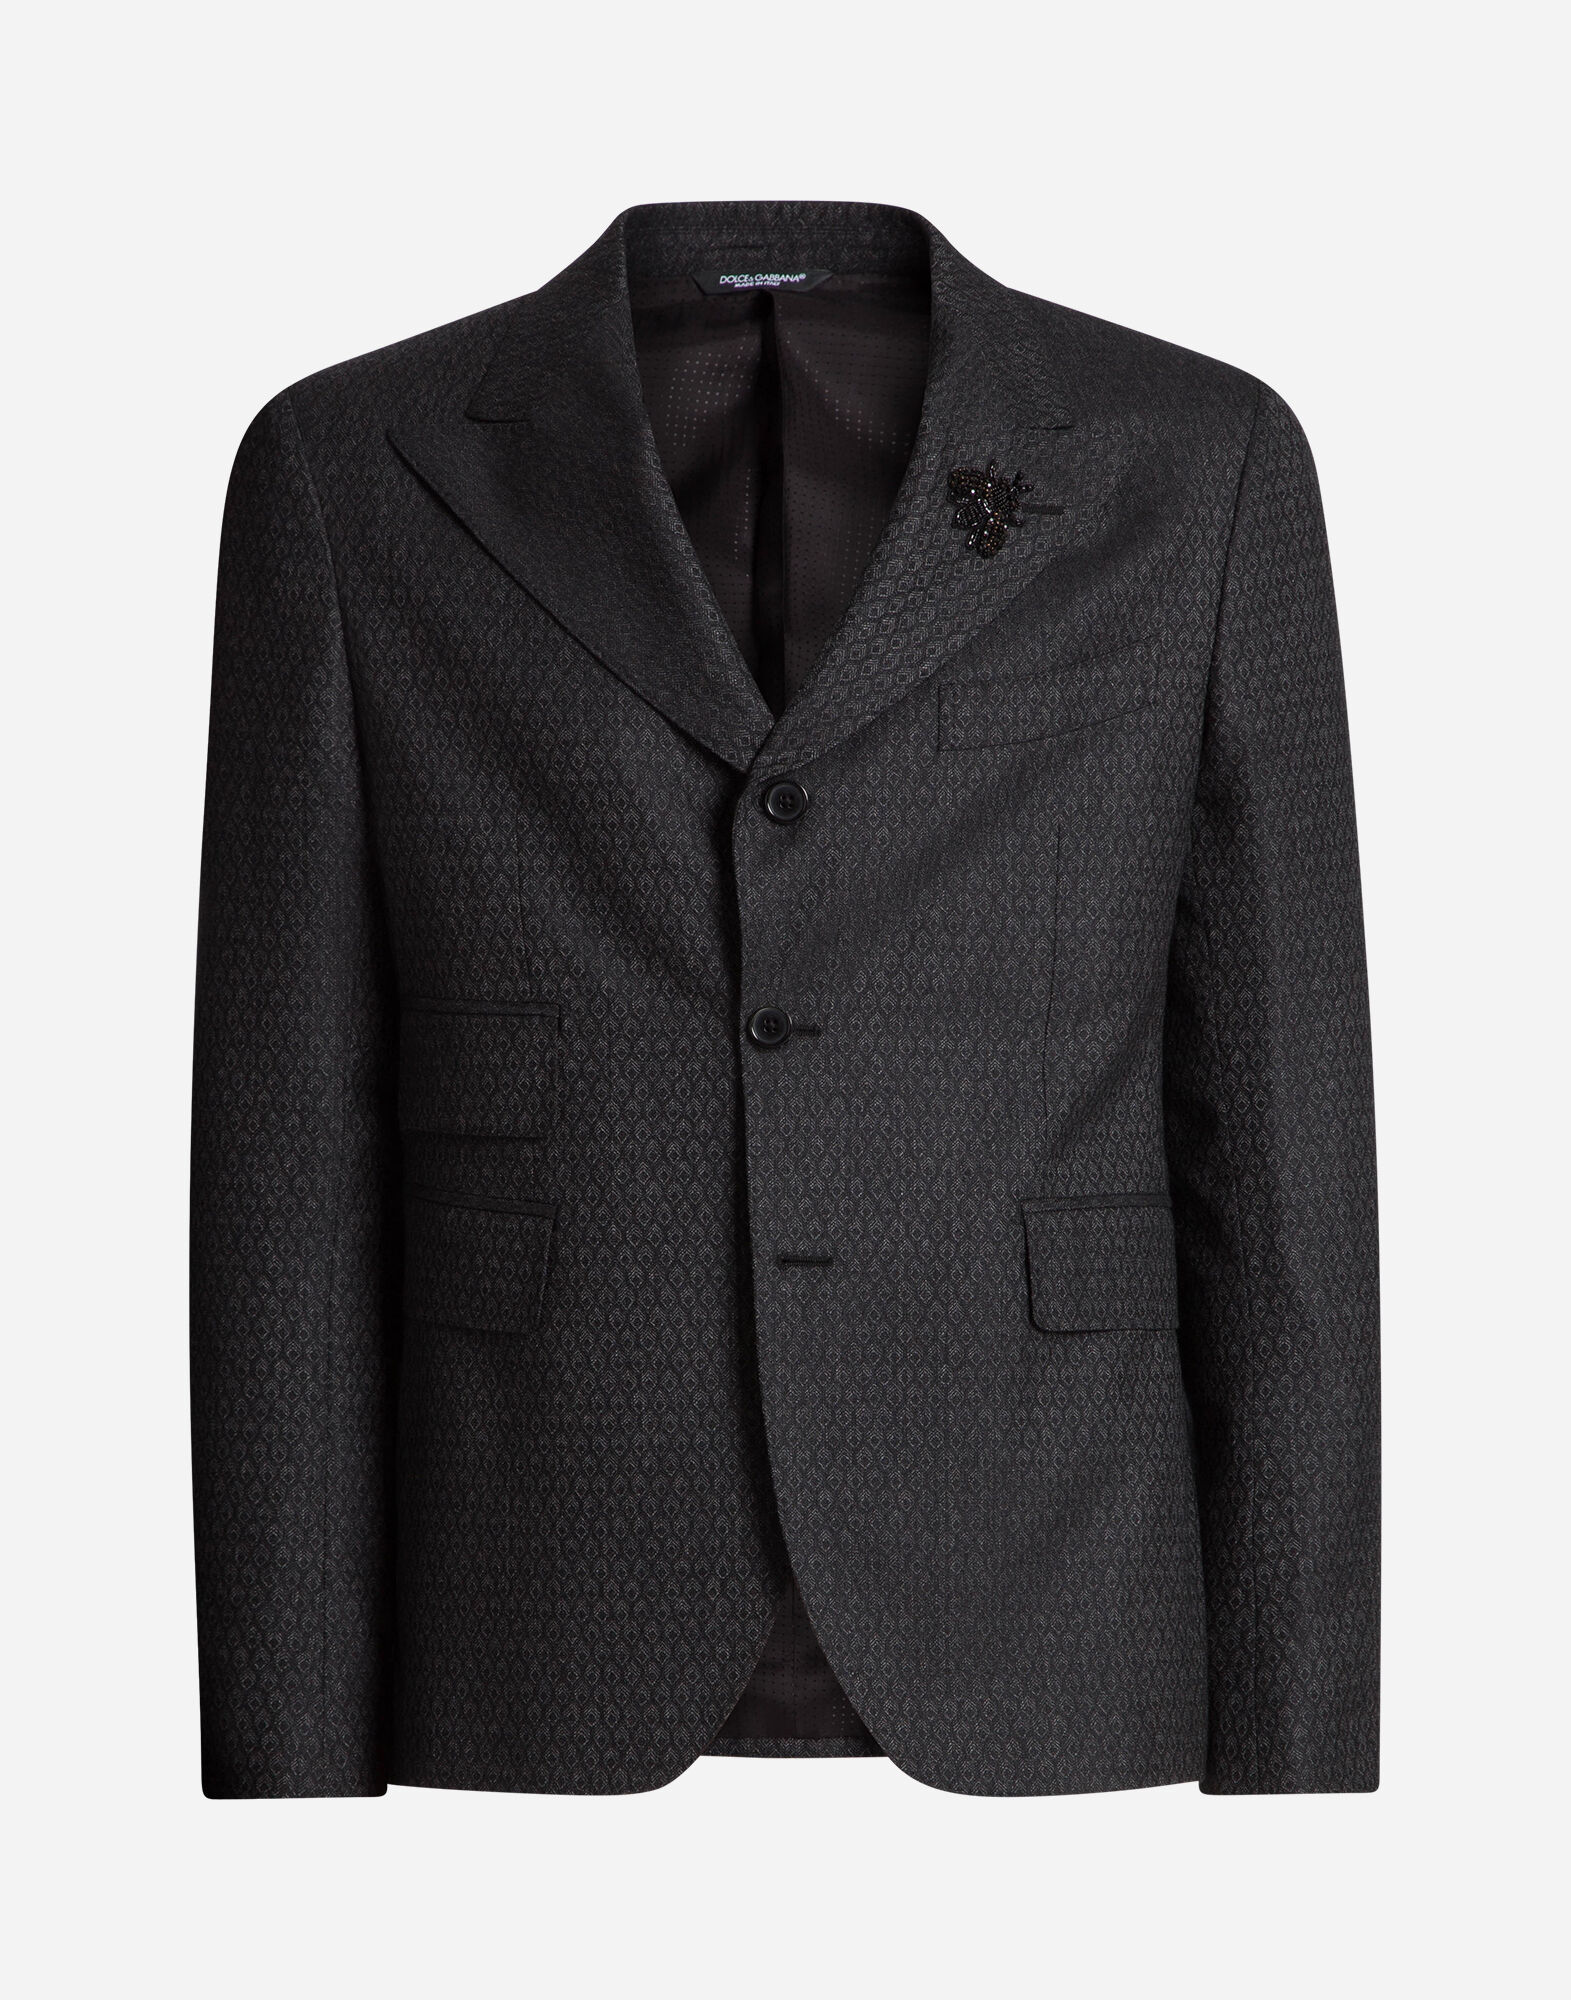 TWO PIECE SUIT IN WOOL WITH PATCH